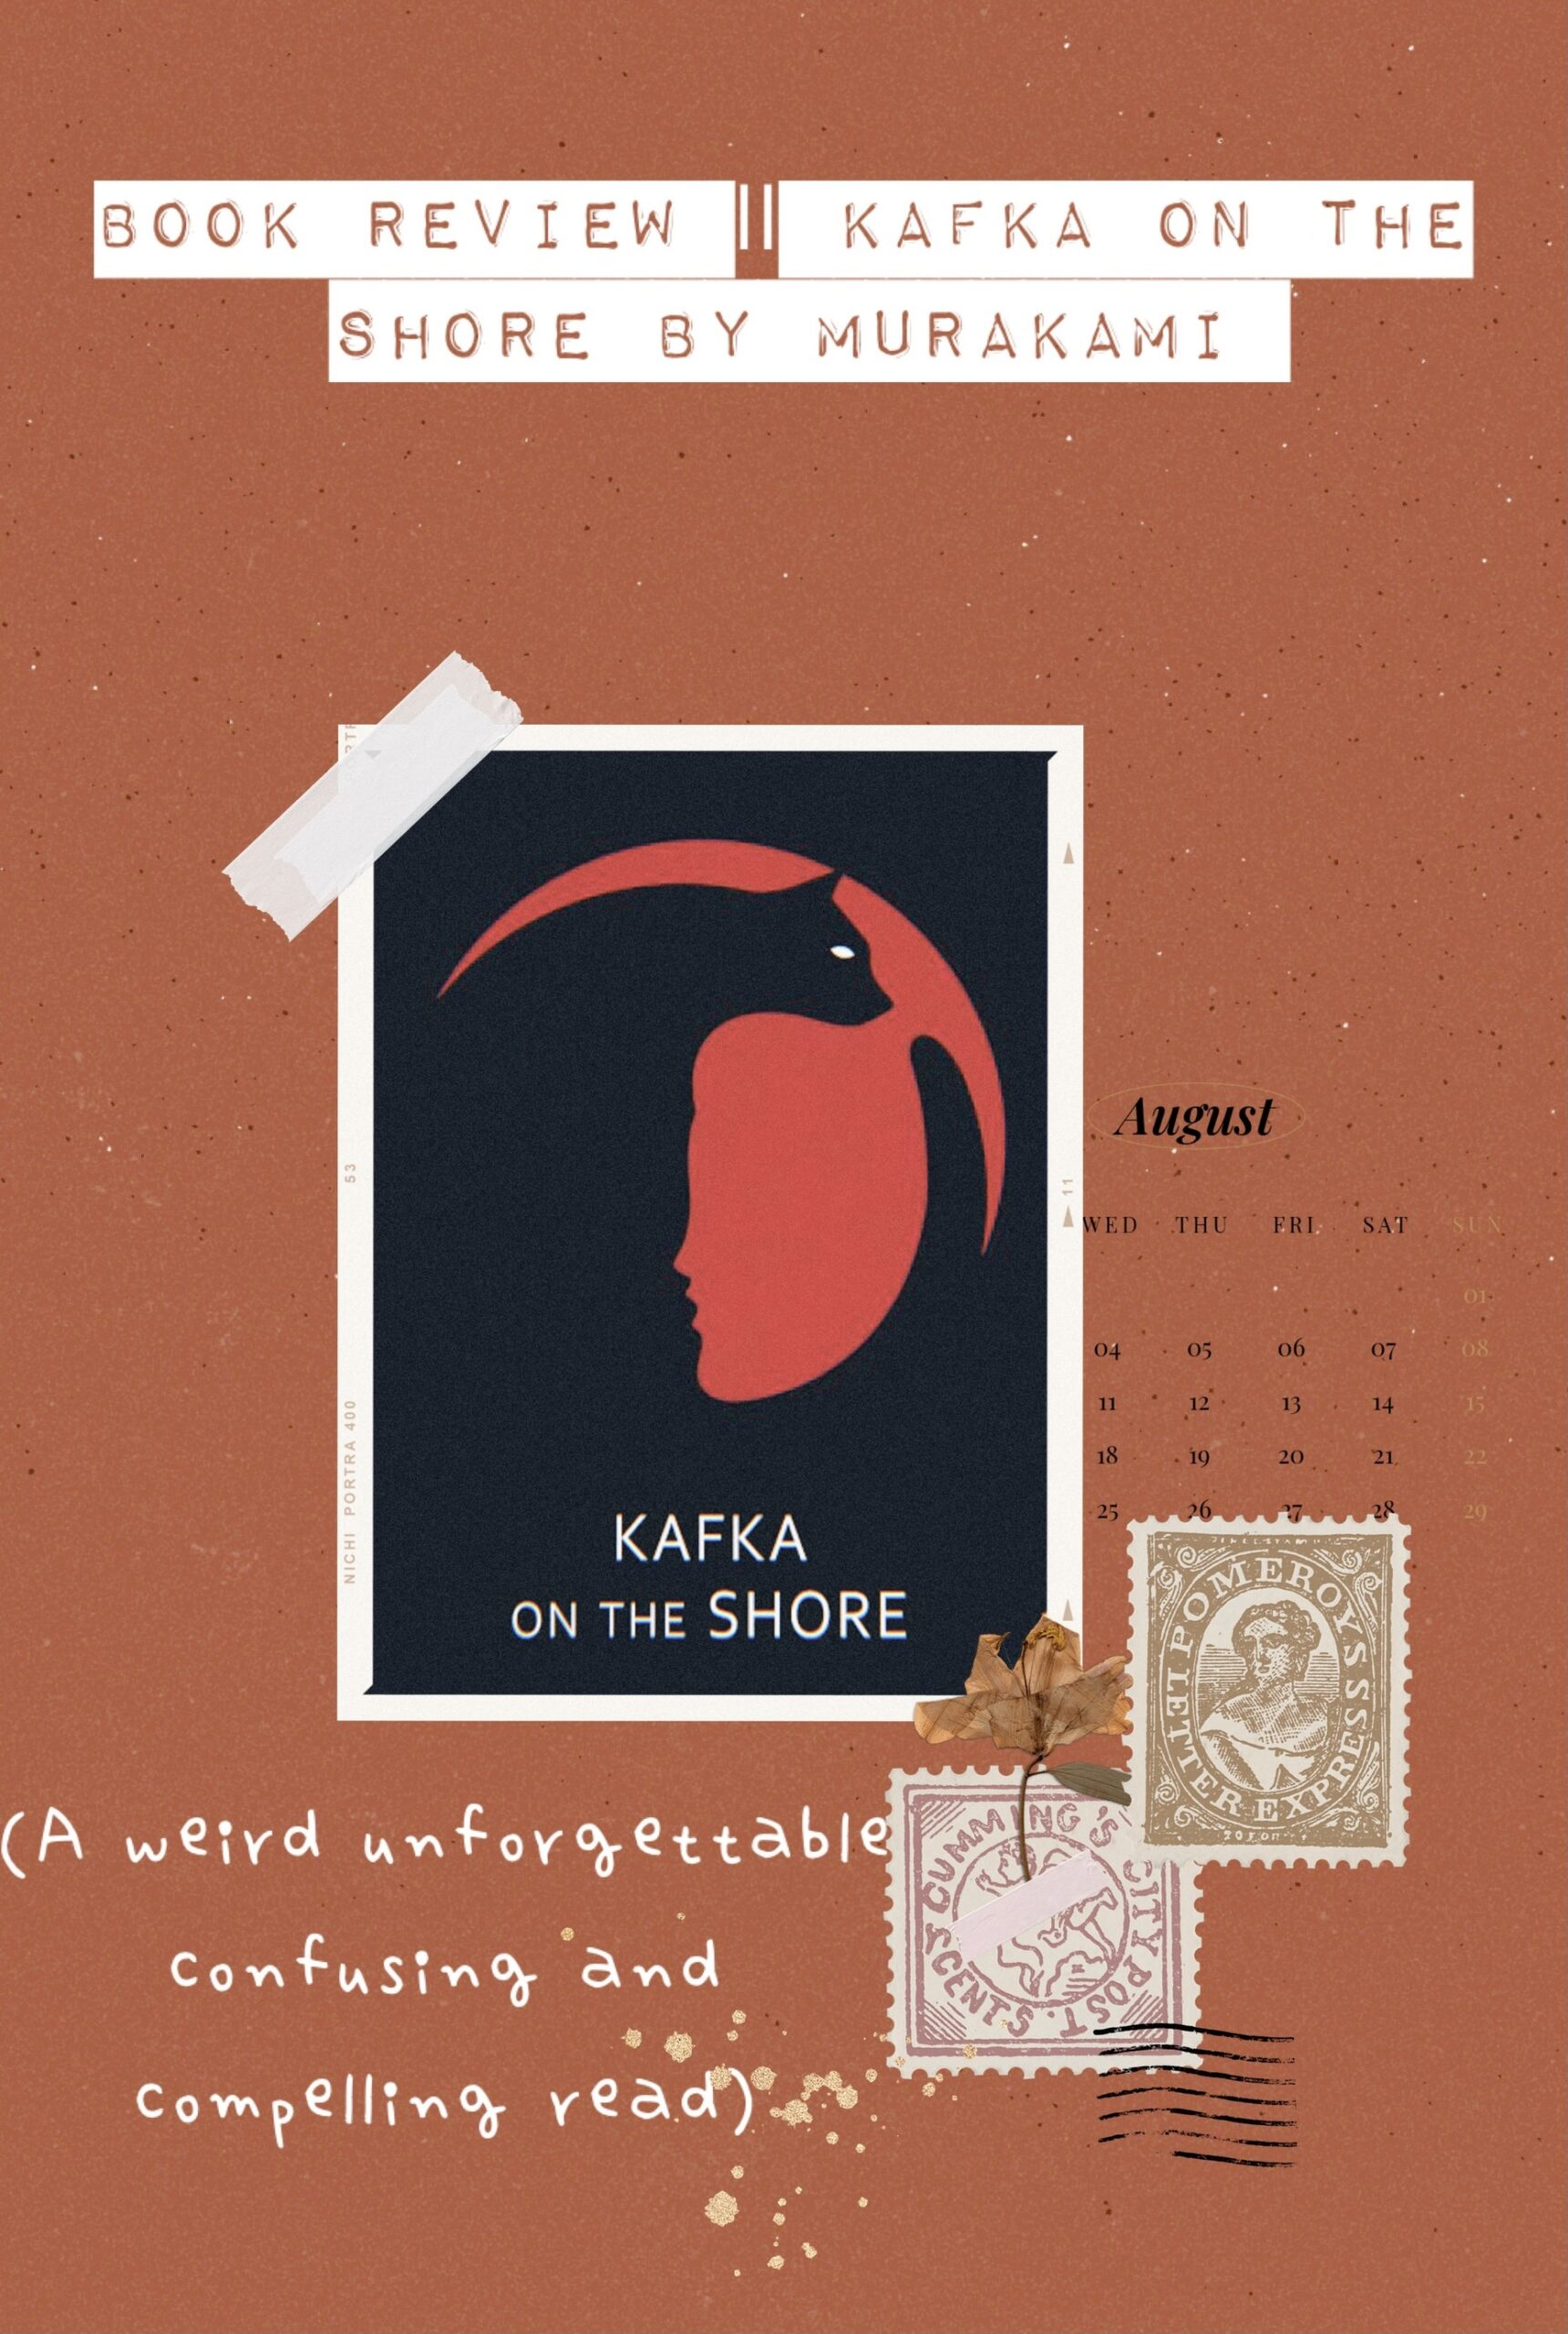 Book Review Kafka on the shore by Murakami